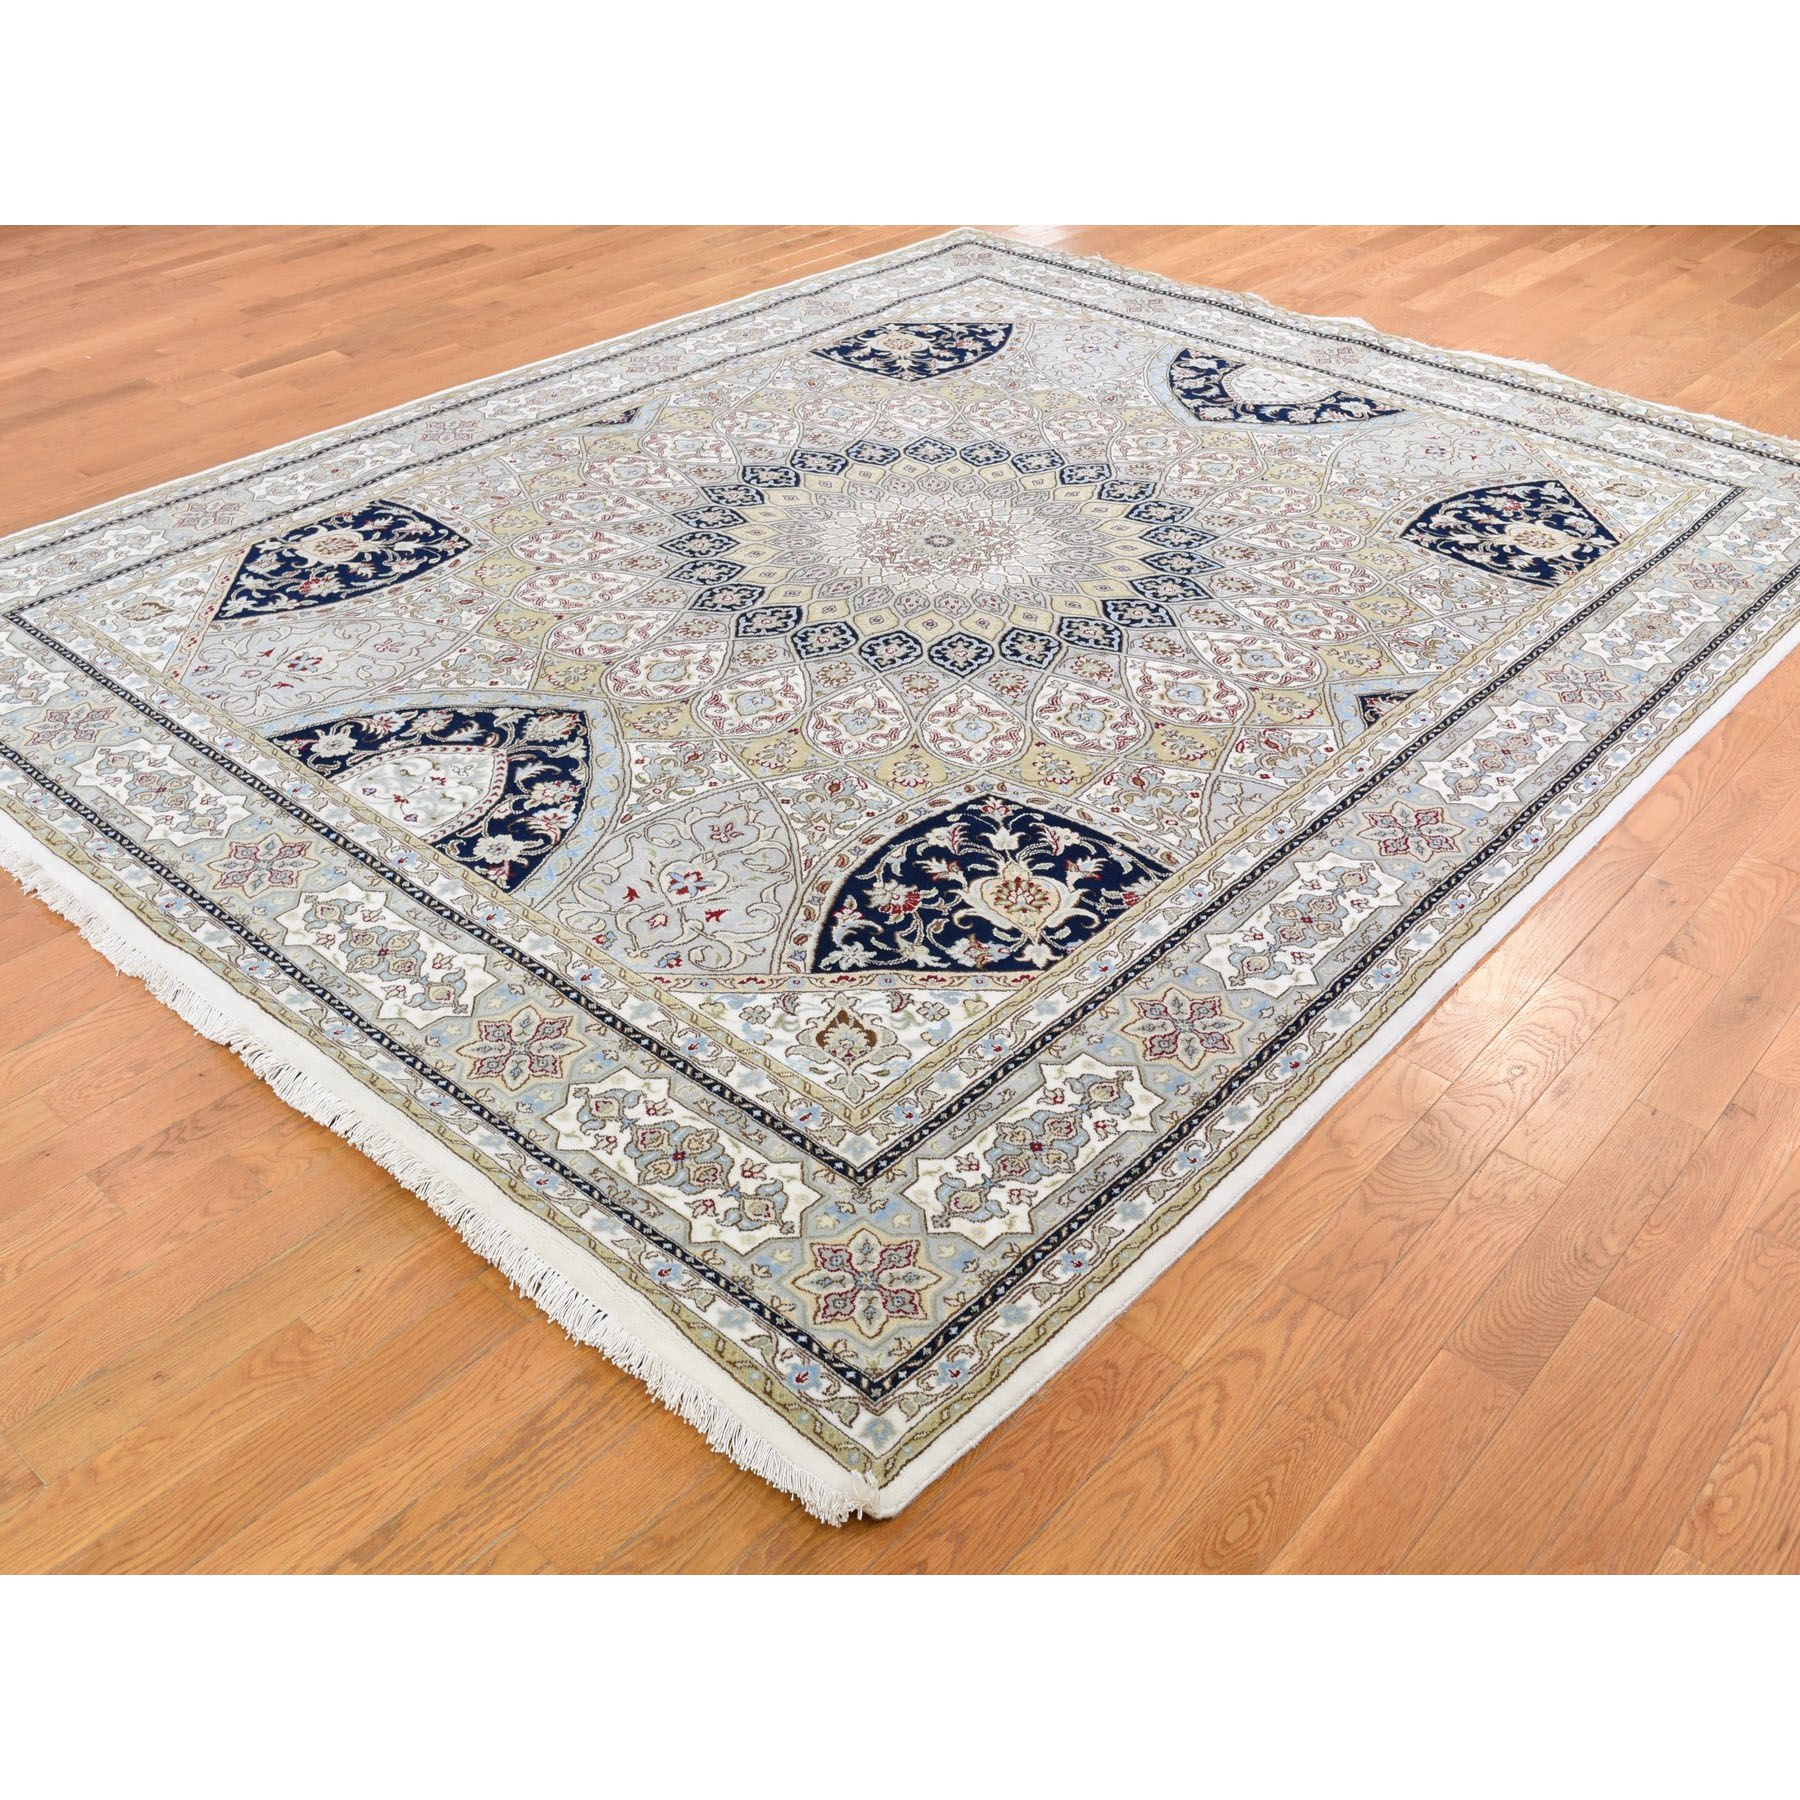 8-3 x10-2  Gray Nain With Gumbad Design Wool and Silk Hand Knotted Oriental Rug